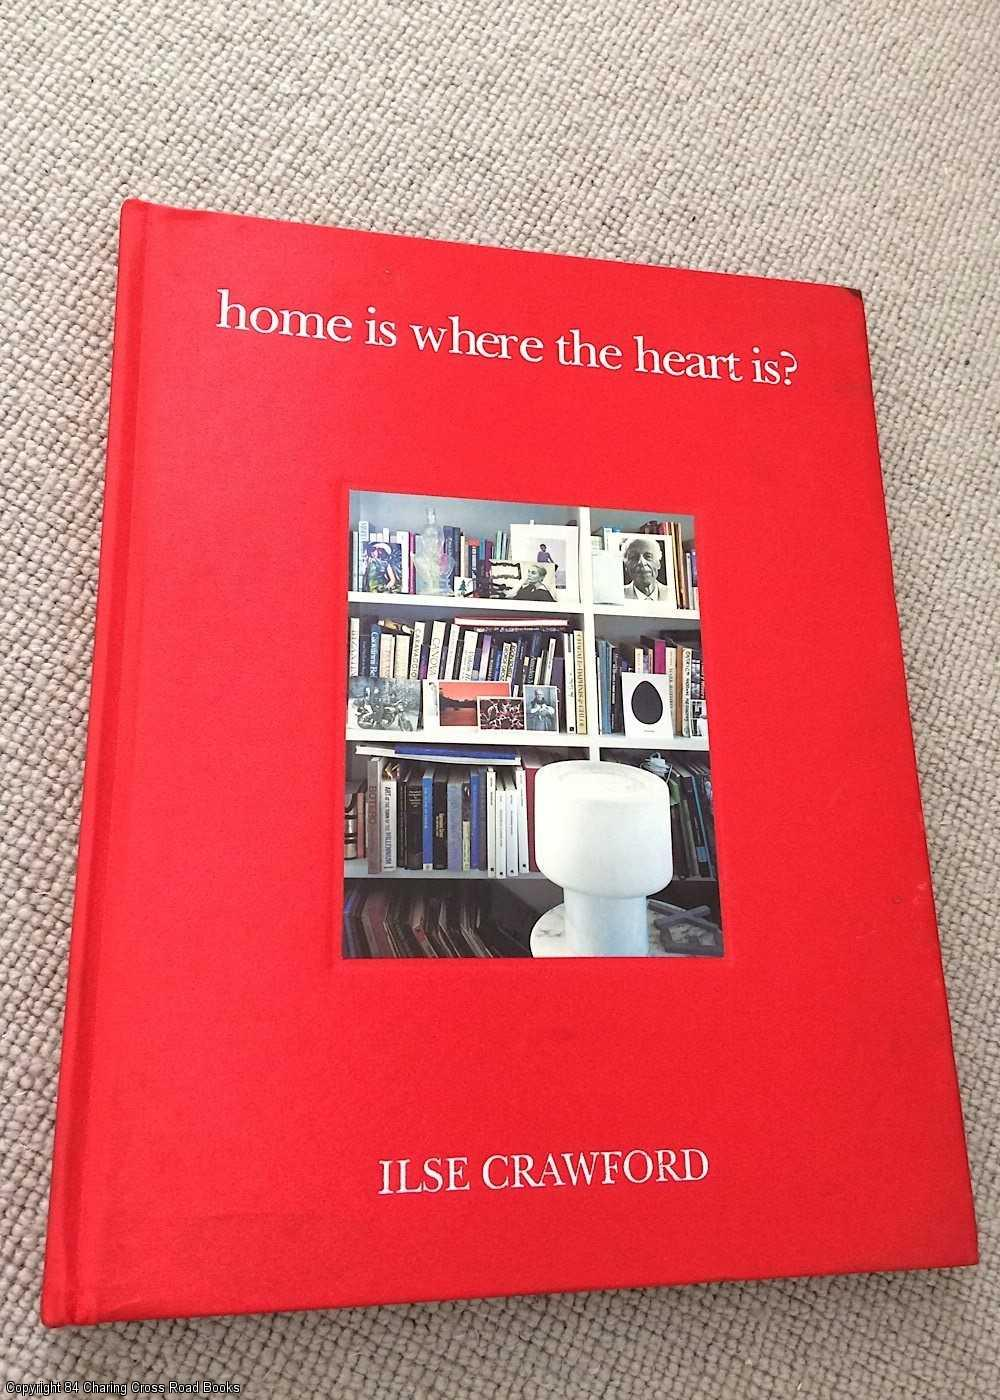 CRAWFORD, ILSE - Home Is Where the Heart Is